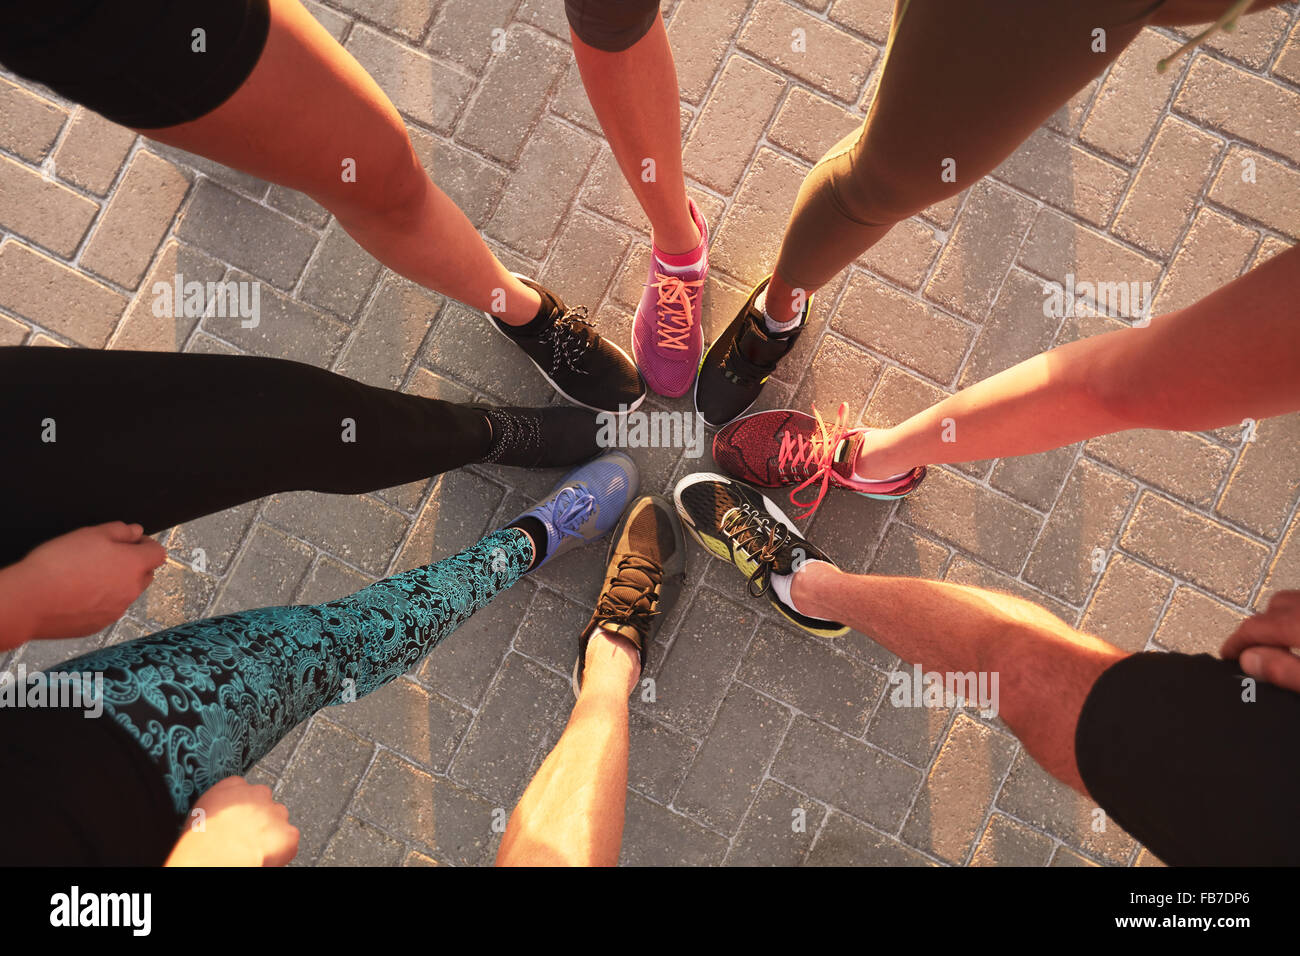 Legs of athletes wearing sports shoes in a circle. Top view of runners standing together. - Stock Image